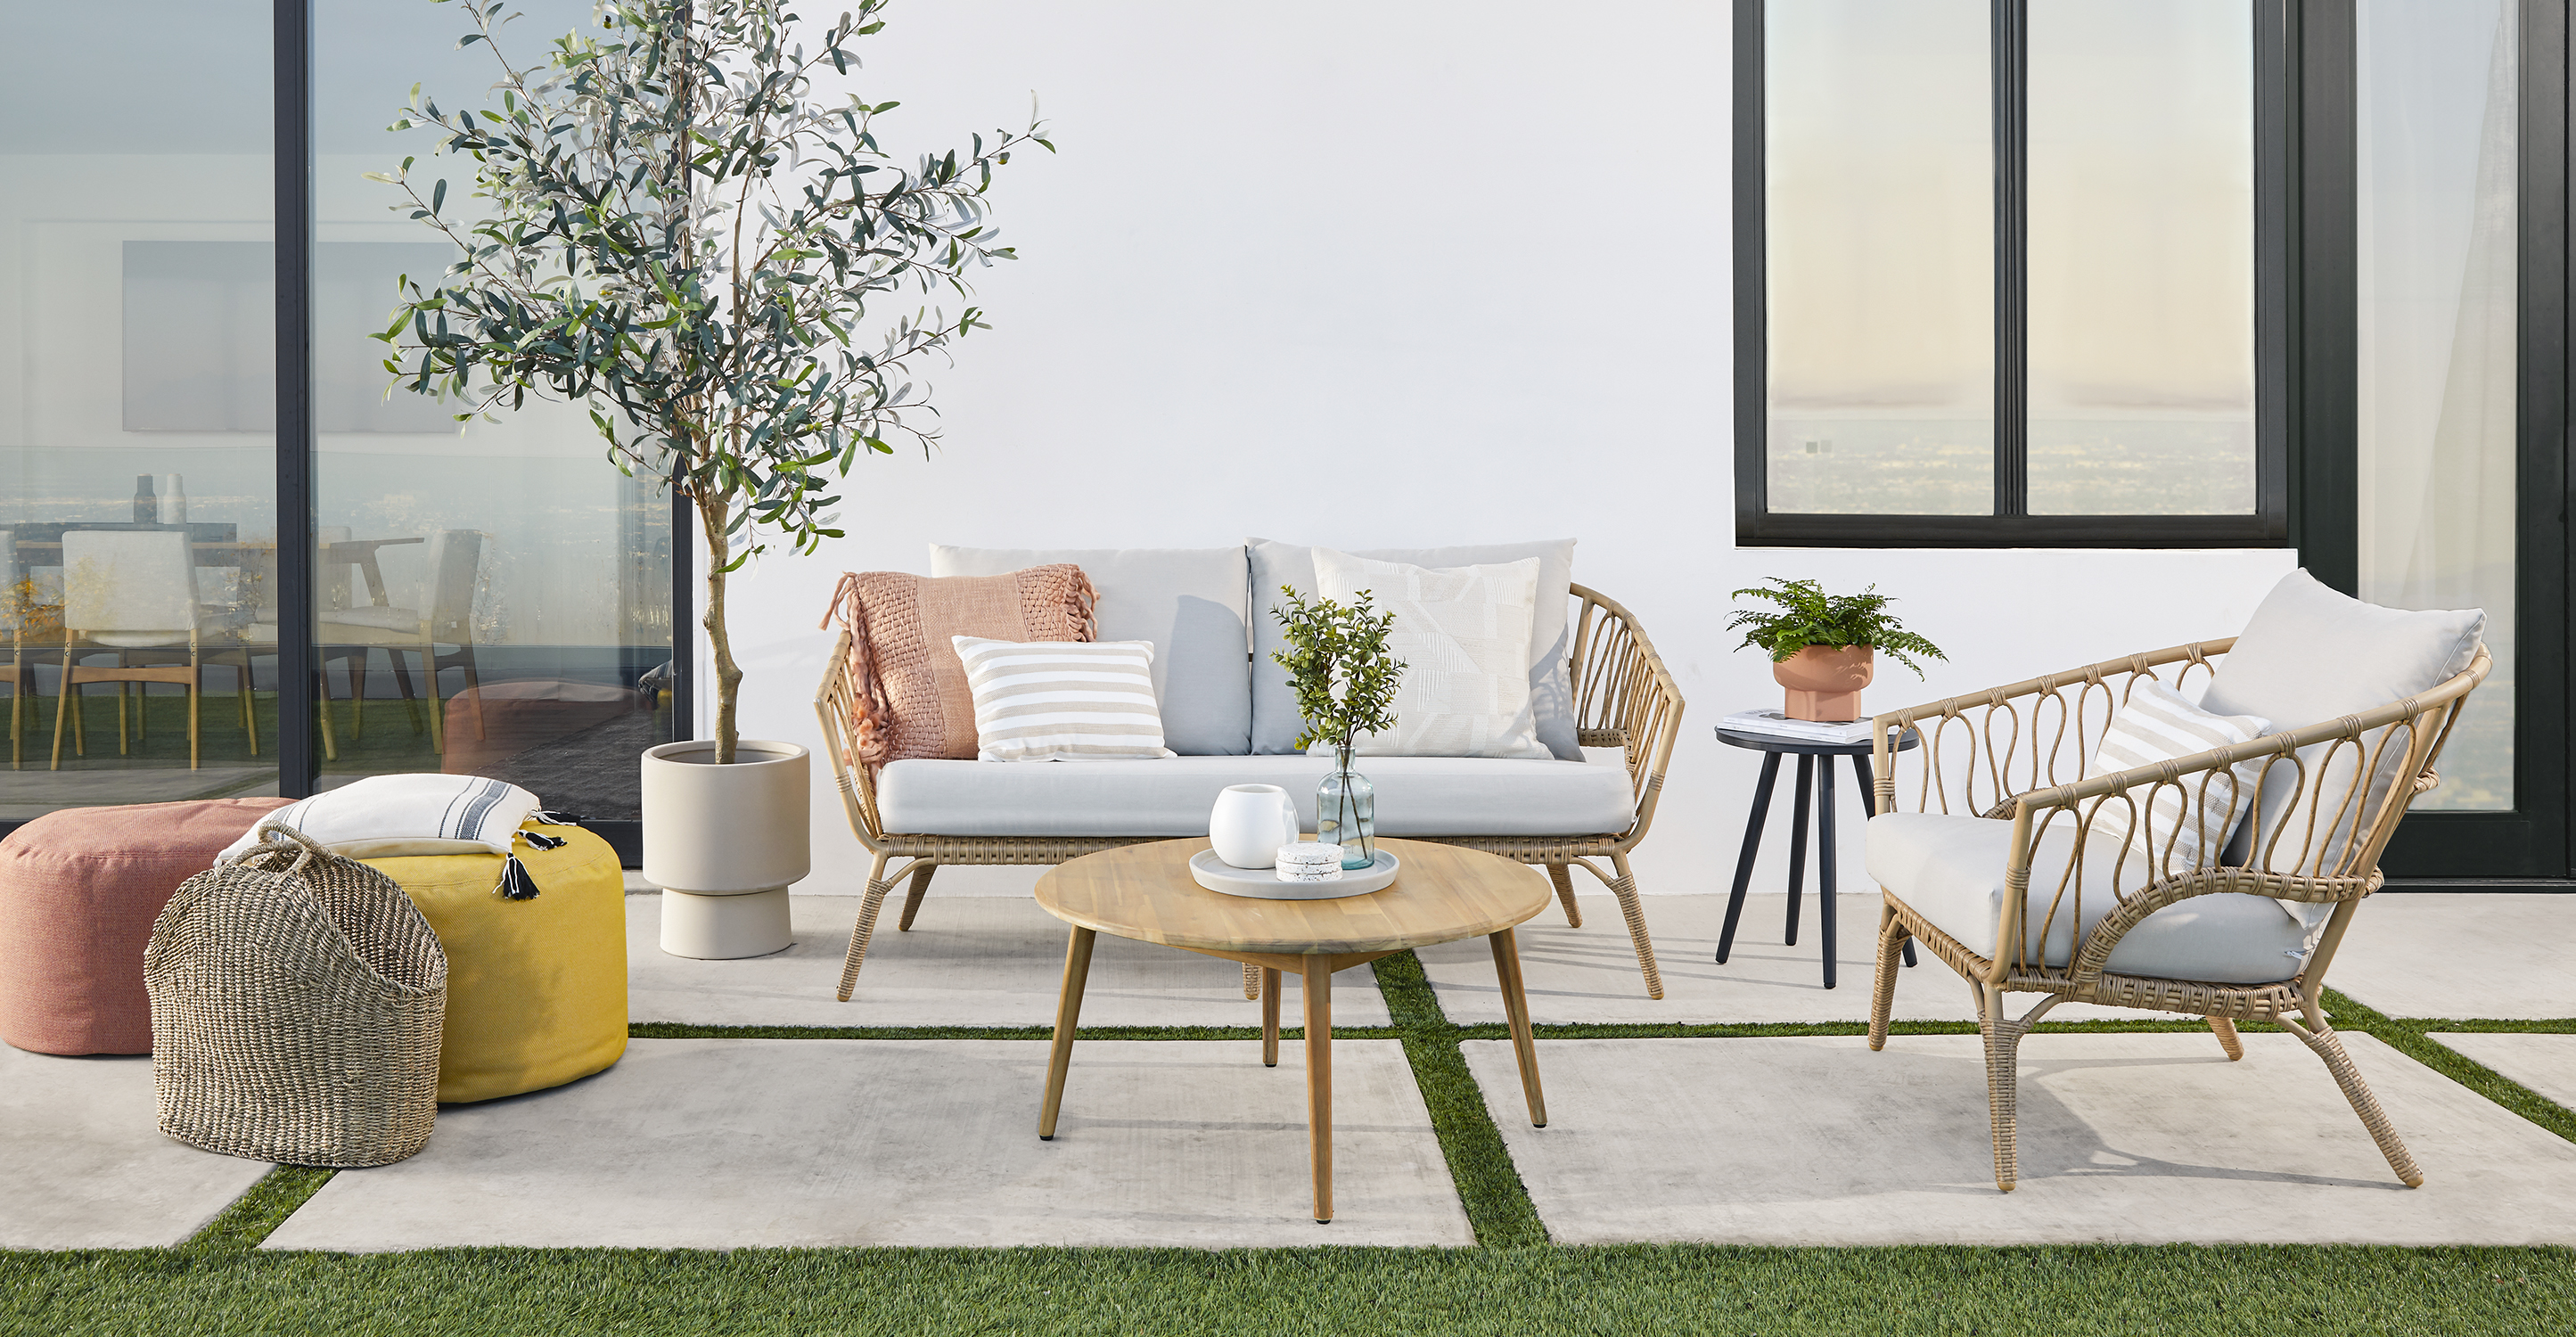 Fresh air and fresh outdoor furniture? A win-win.